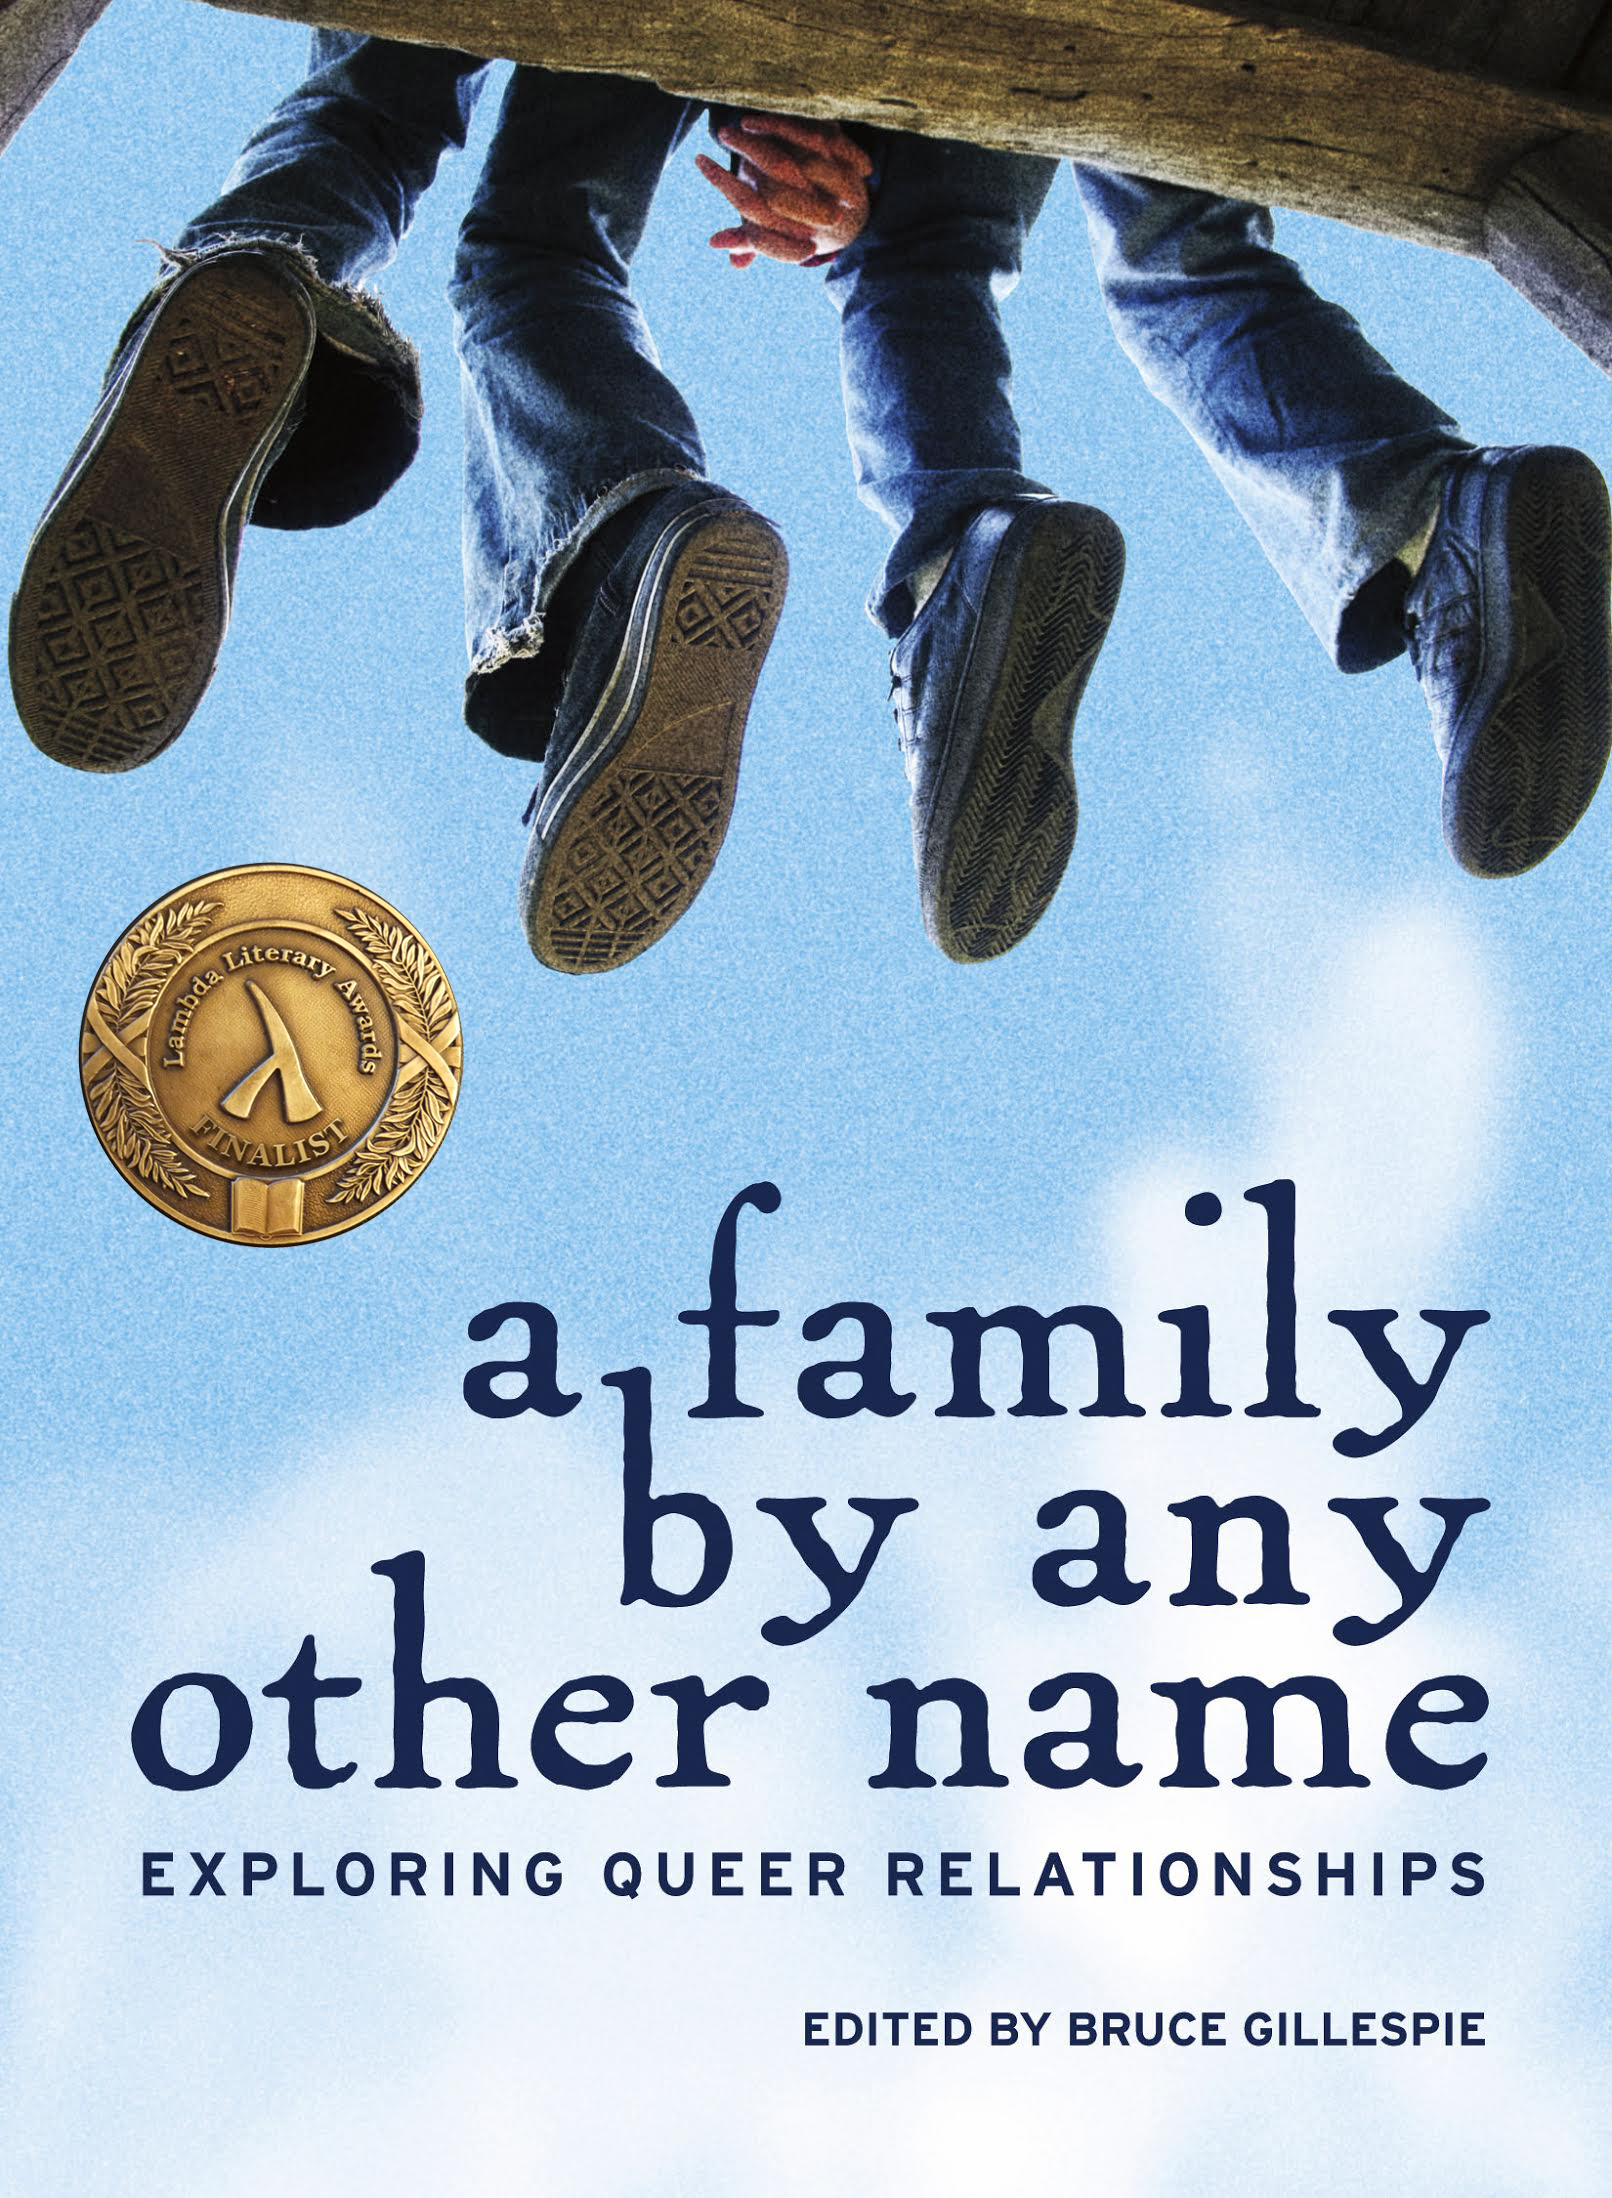 a family by any other name